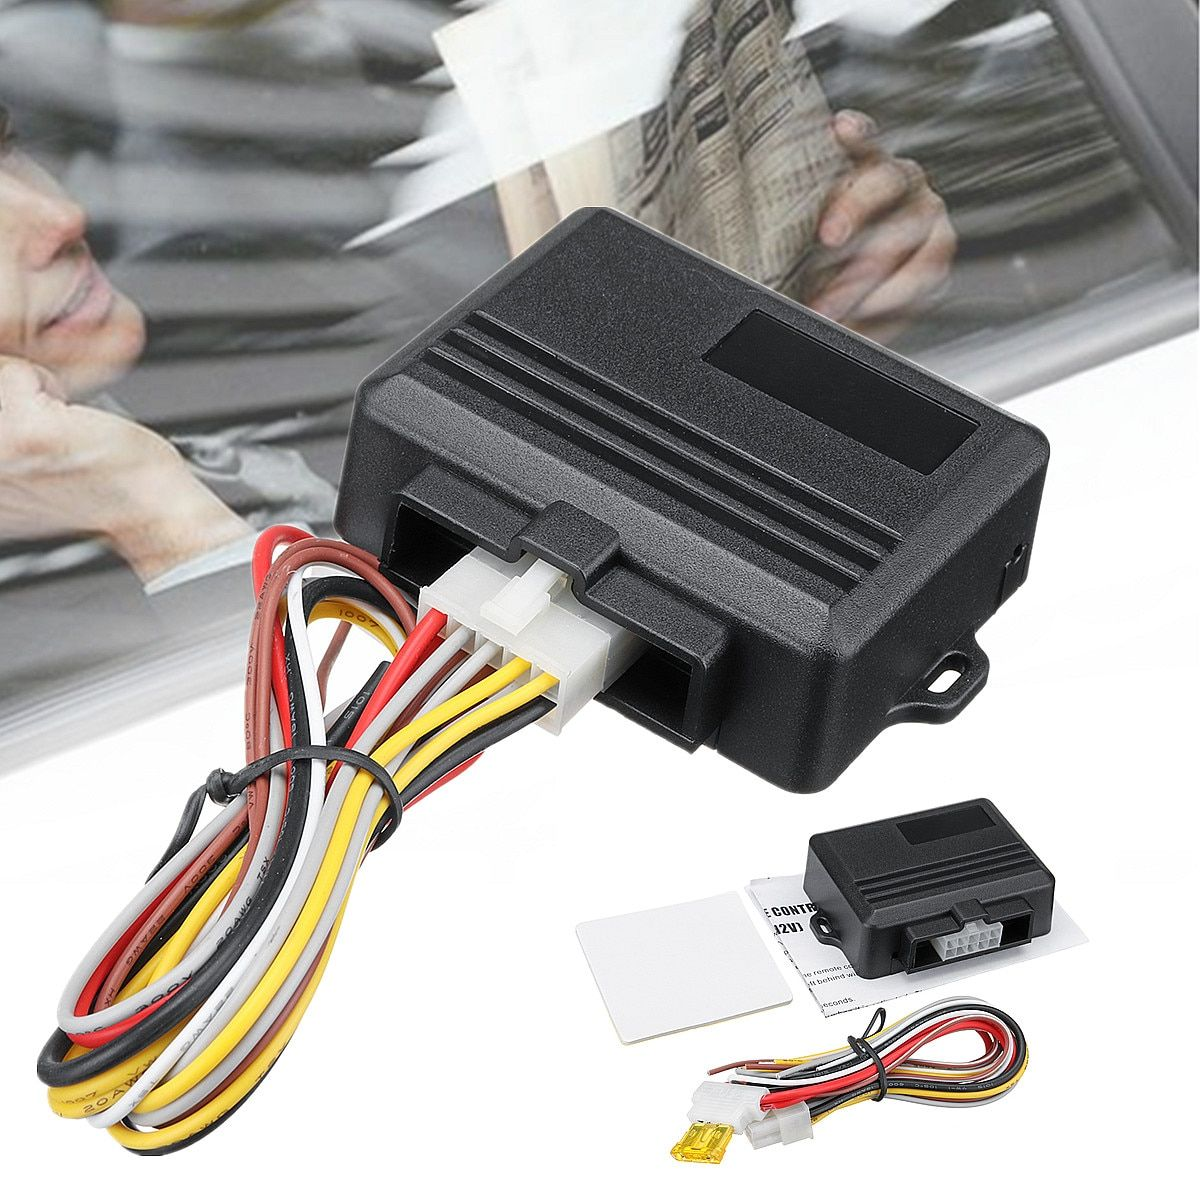 ABS 12V Automatic Universal 2-door Car Window Closer Module Auto Security System Kit Set 8s Lifting Time 90x66x26mm Safe